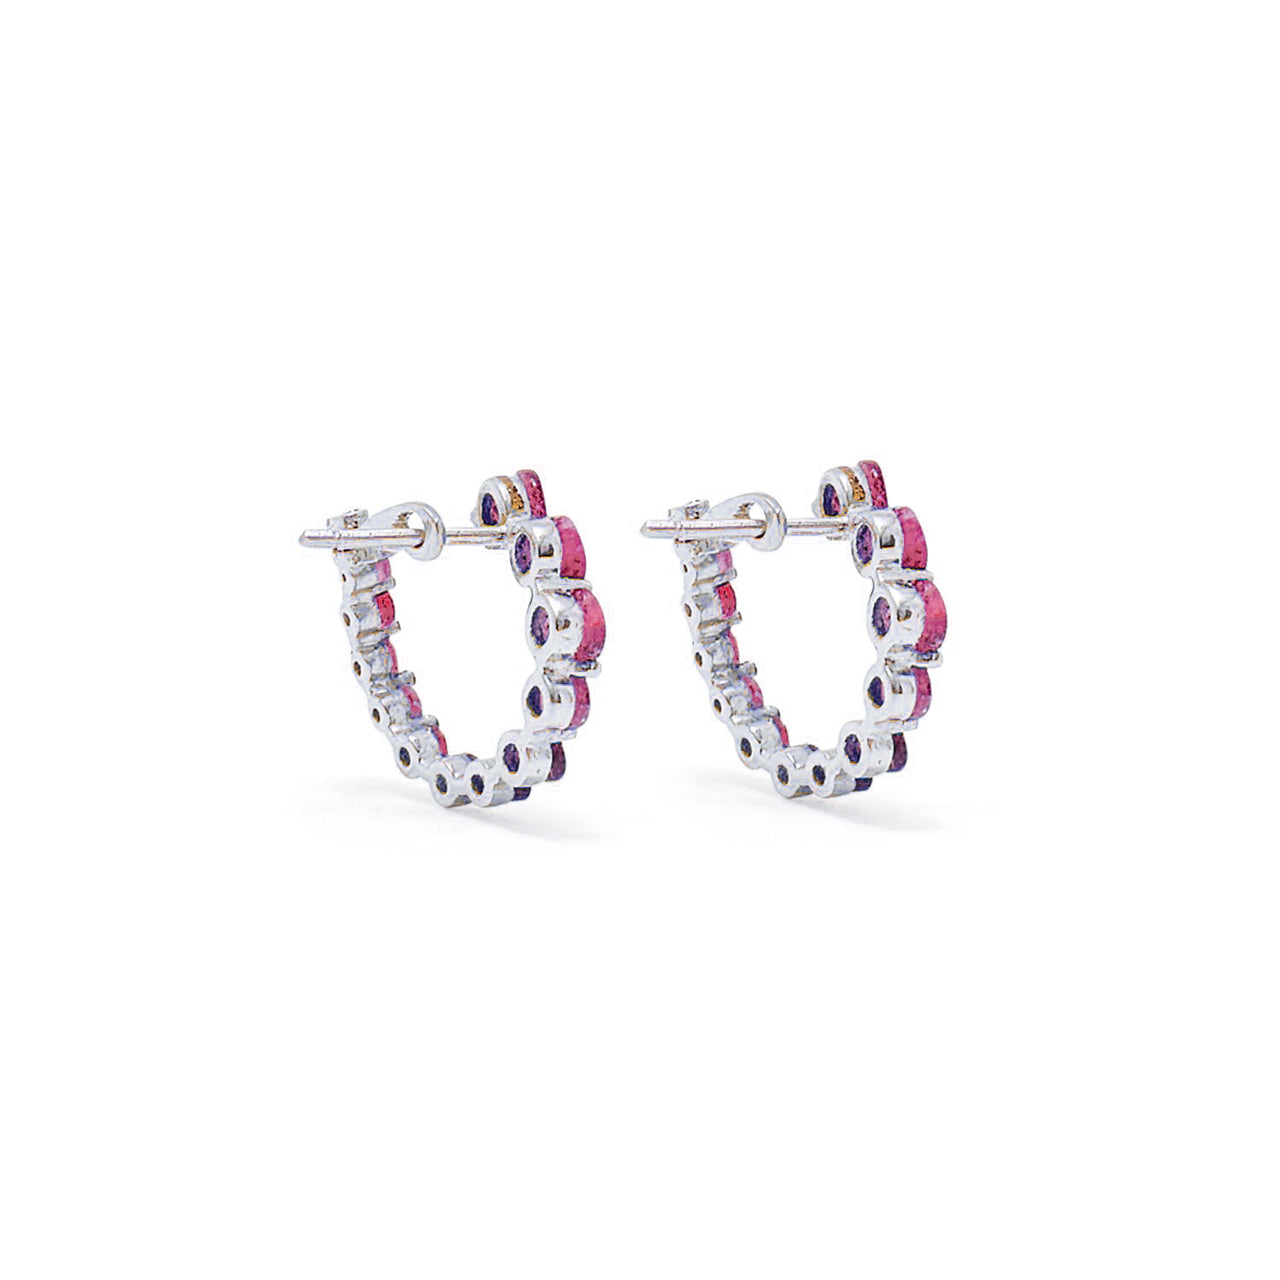 Ruby Swirl White Gold Earrings-Earrings-Jaipur Atelier